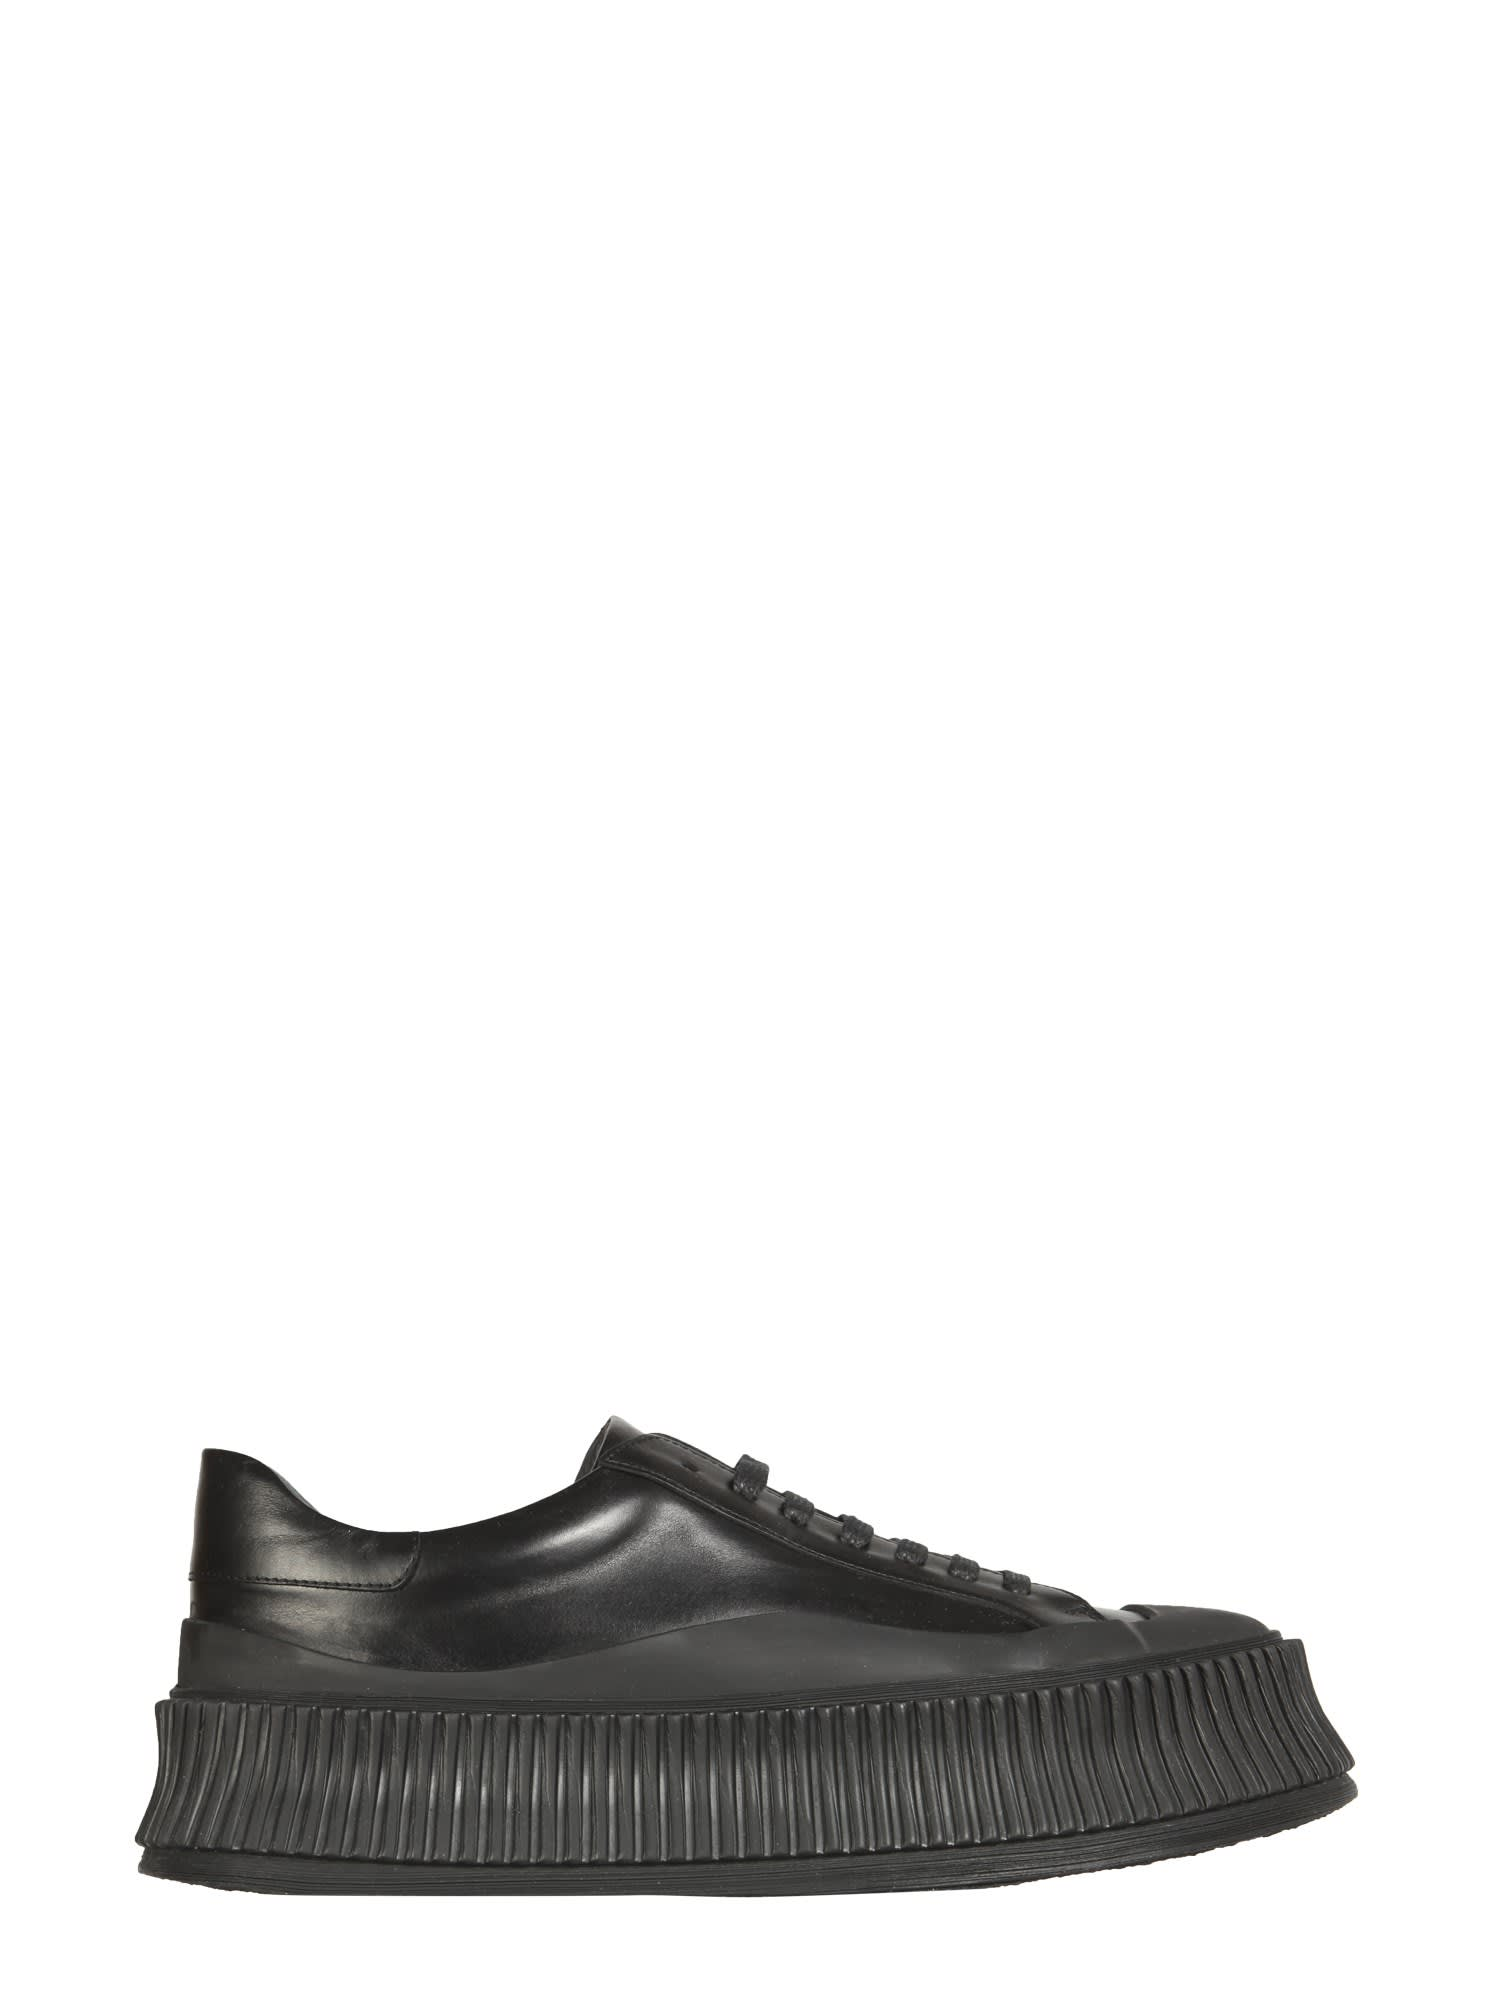 Buy Jil Sander Leather Sneakers online, shop Jil Sander shoes with free shipping